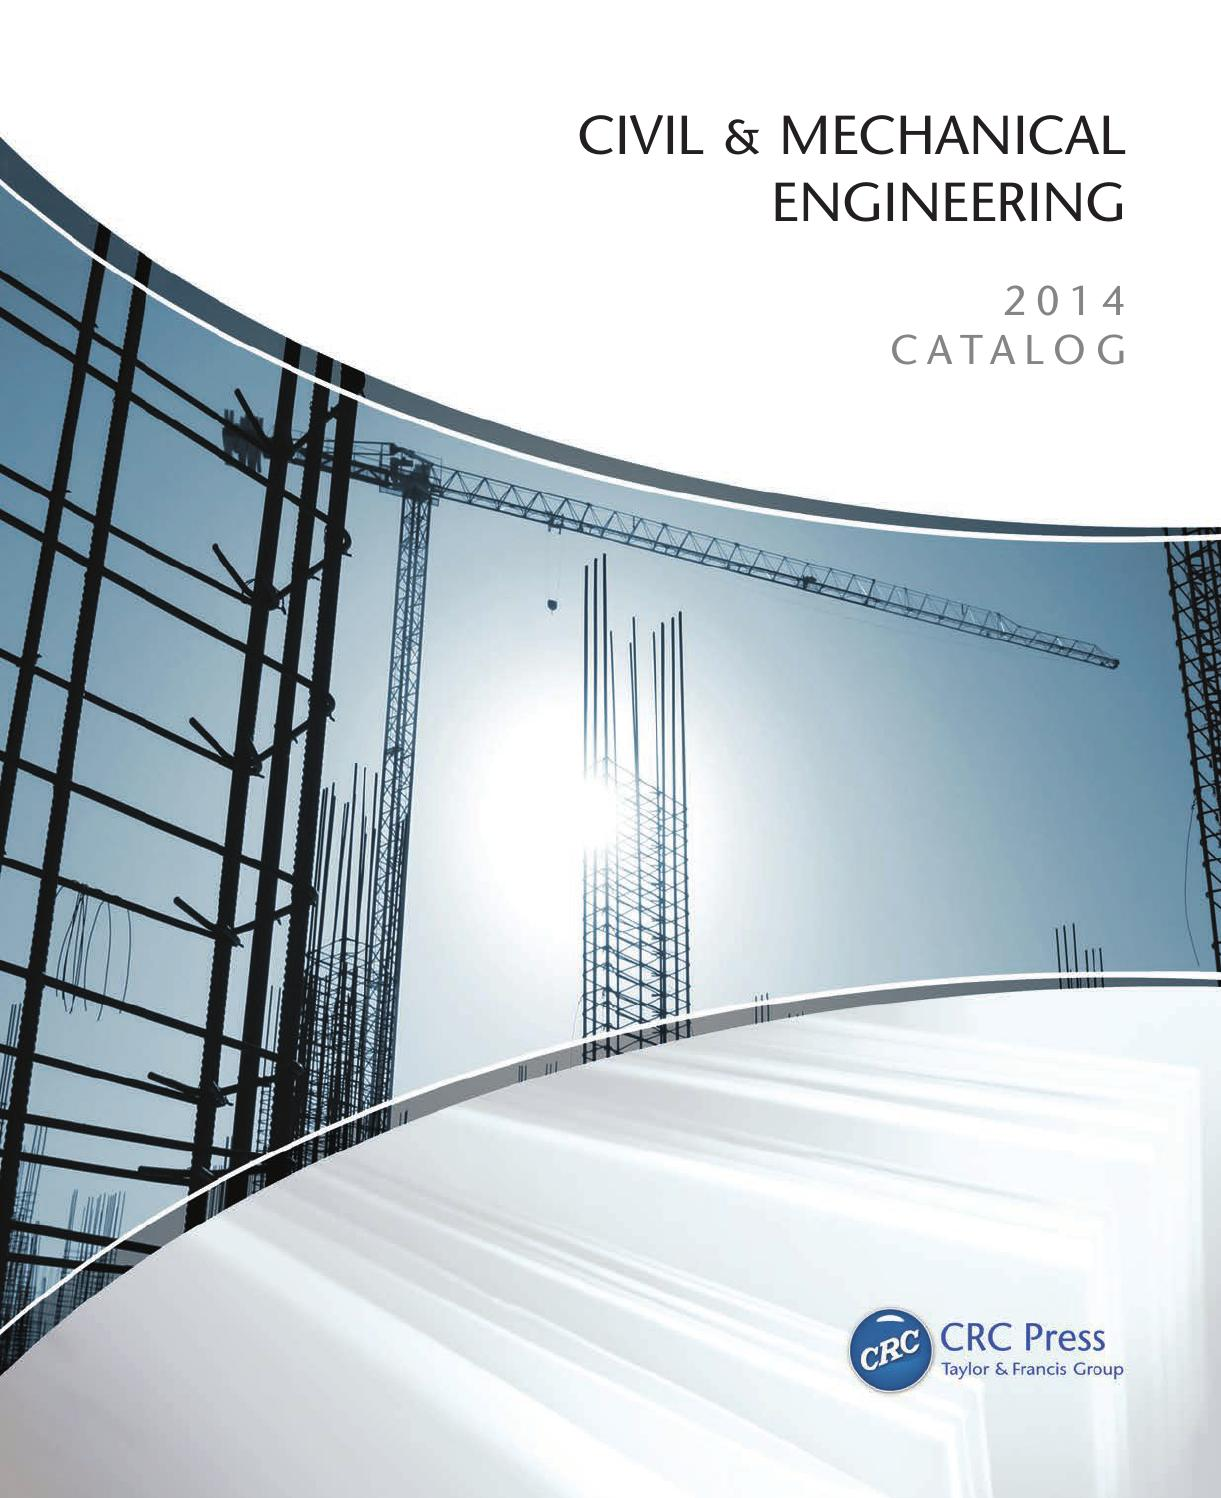 Civil Mechanical Engineering By Crc Press Issuu